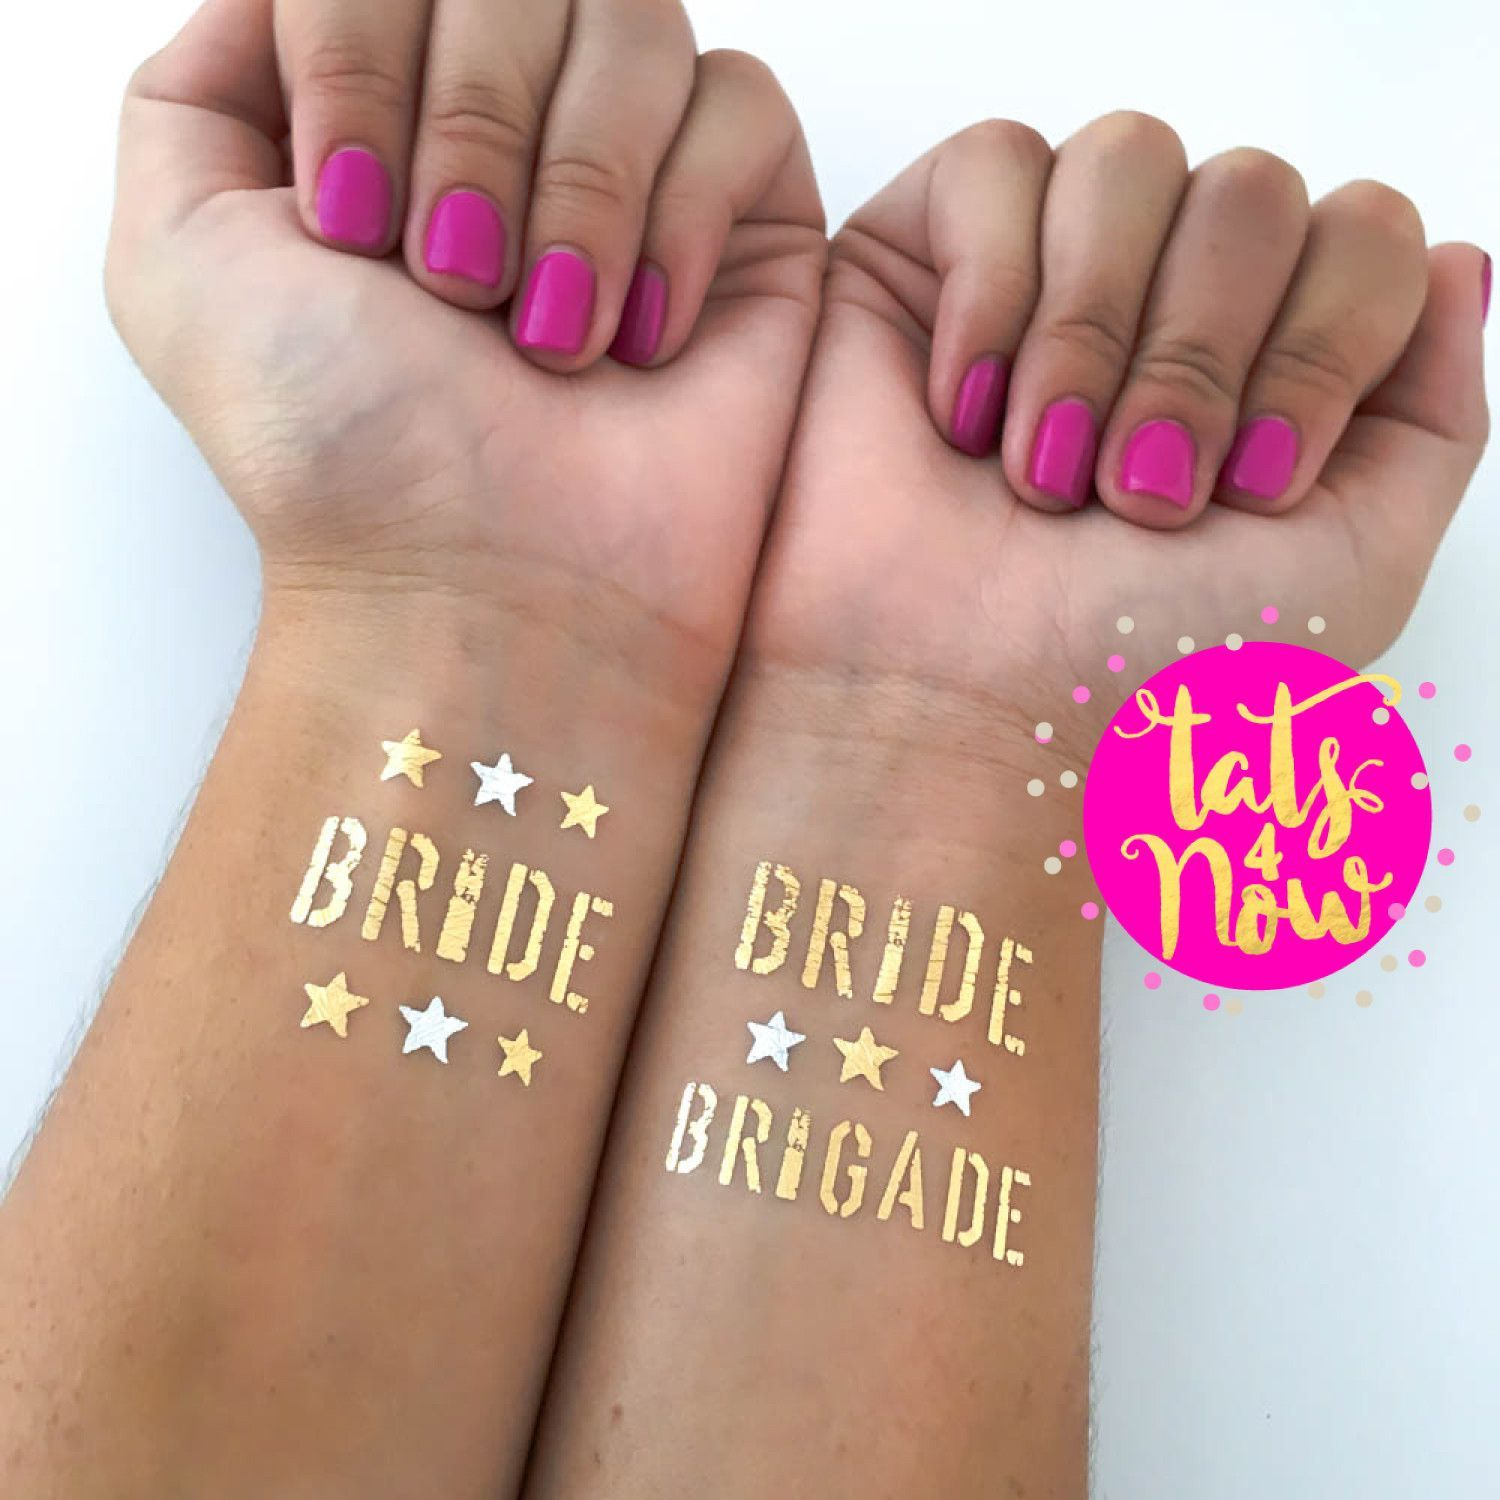 16 Military Bride Brigade and Bride party tattoos | Bachelorette ...